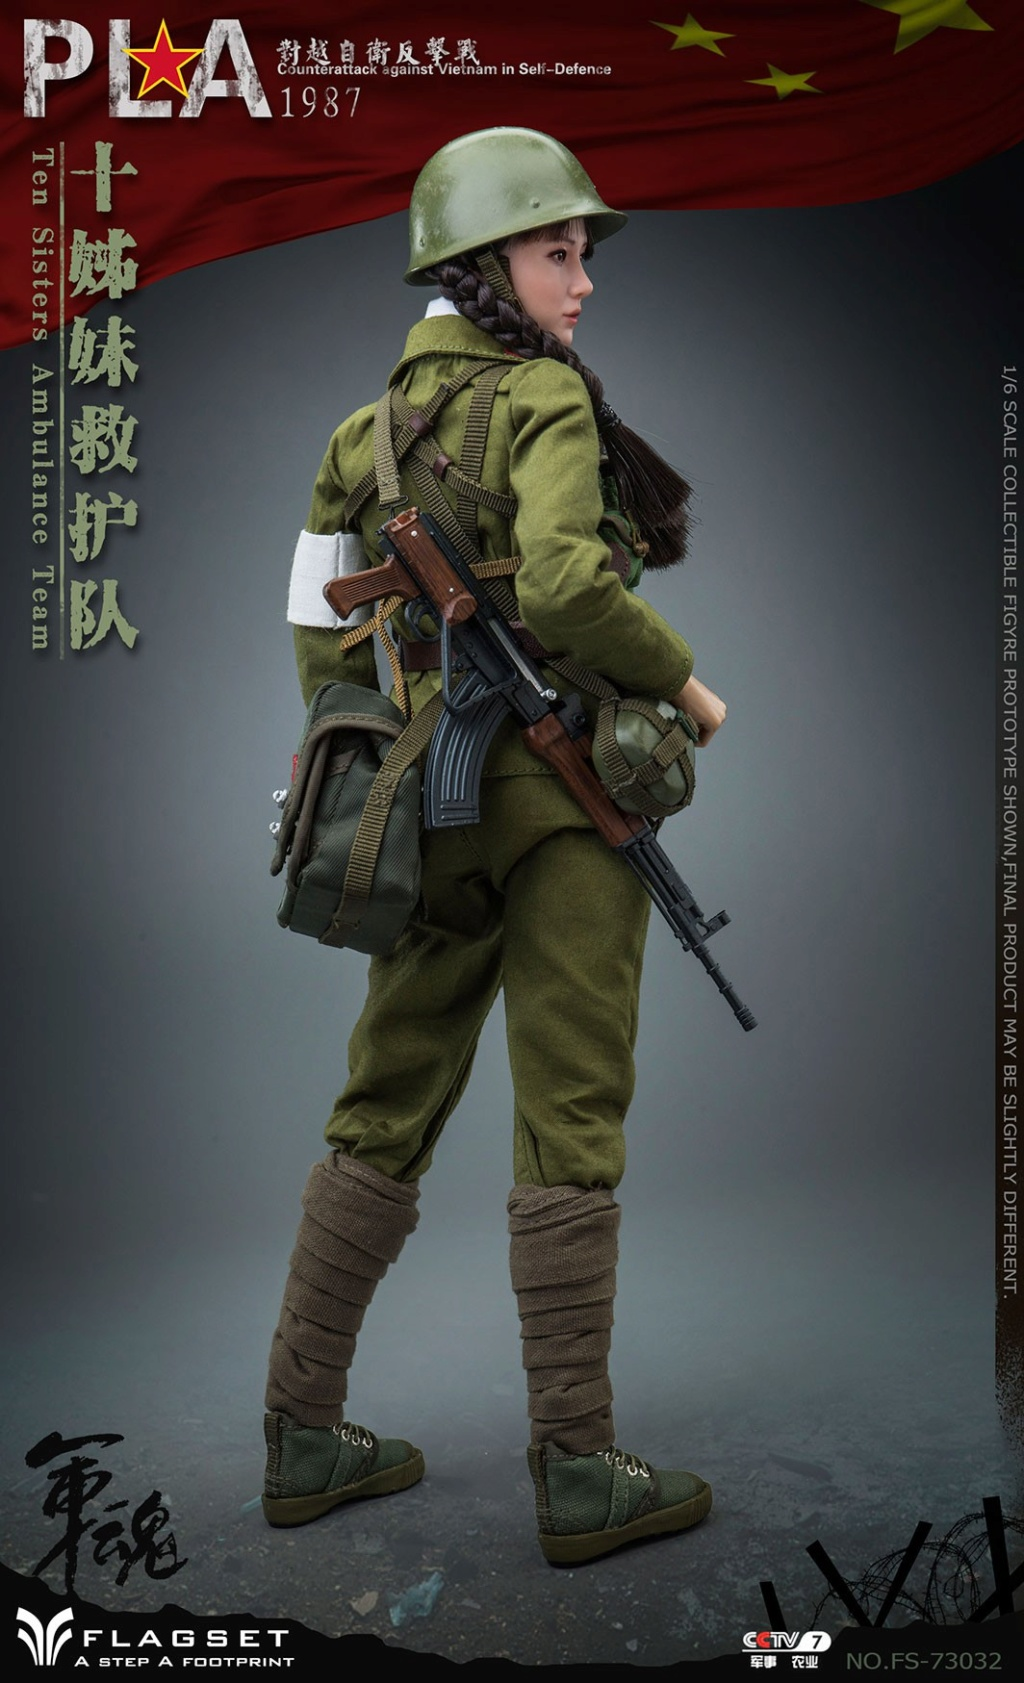 CounterAttack - NEW PRODUCT: Flagset: 1/6 counterattack against Vietnam-female soldiers of the ten sisters rescue team of the Chinese People's Liberation Army (FS73032#) 06535710